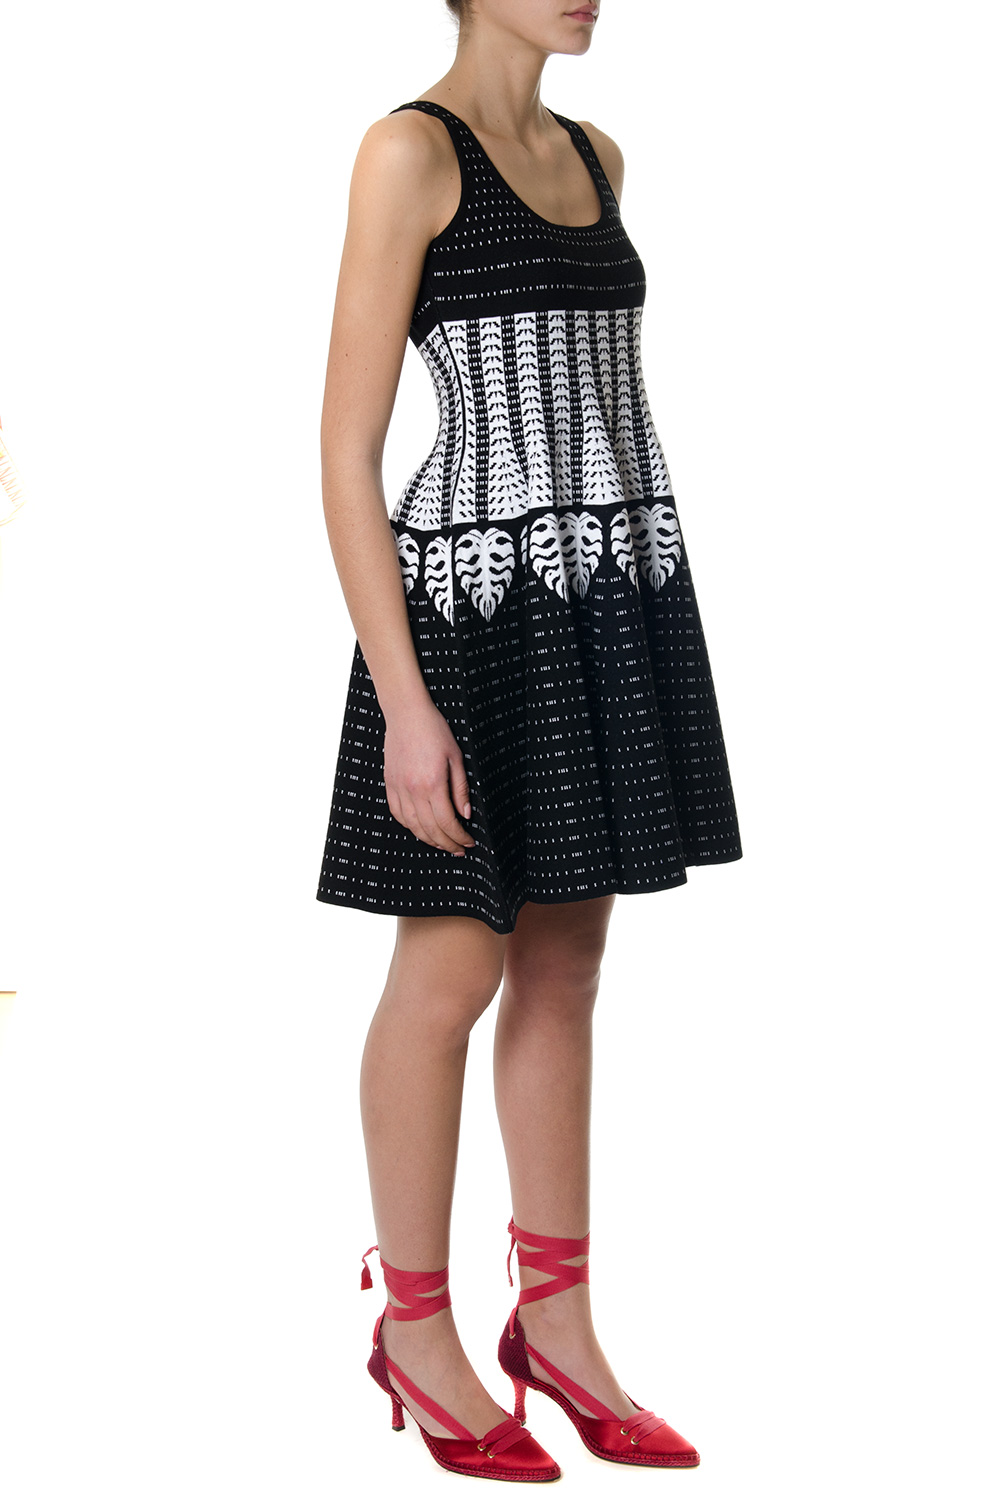 patterned intarsia dress - Black Dsquared2 Discount Wholesale Price Clearance New Arrival 3xmky